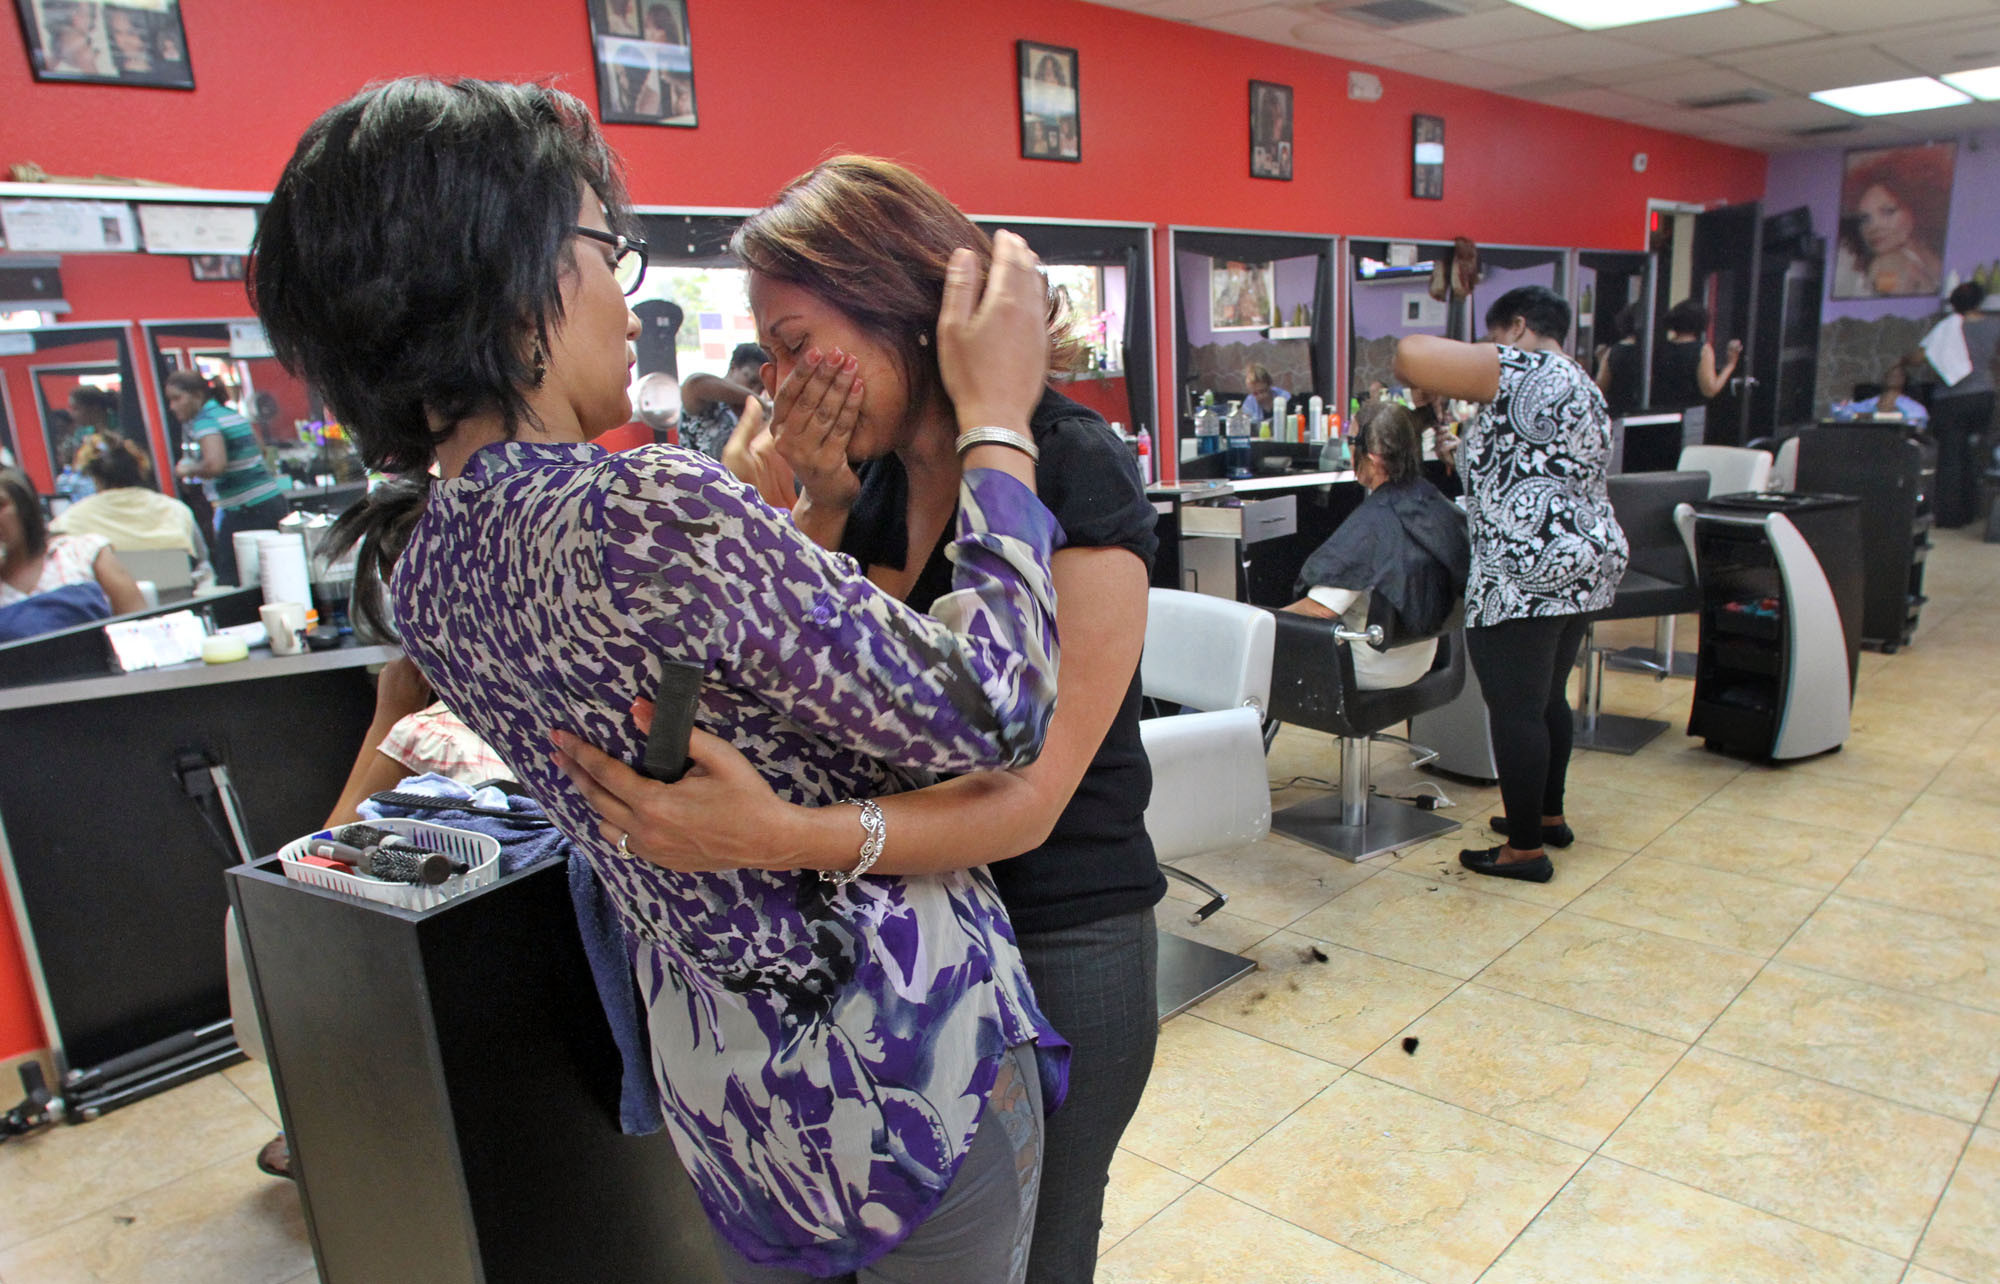 A day after a horrific shooting Hair Stylist Irene Sanchez, right, of Salon Dominicano in east Orlando is comforted by Michelle Tall, right, of Winter Park Friday, October 19, 2012 at the salon where Mari Marte worked at . Matre was one of three people killed Thursday by a gunman that rushed into a Casselberry Hair Salon. Michelle Tall had her hair done by Mari Marte for 9 years.